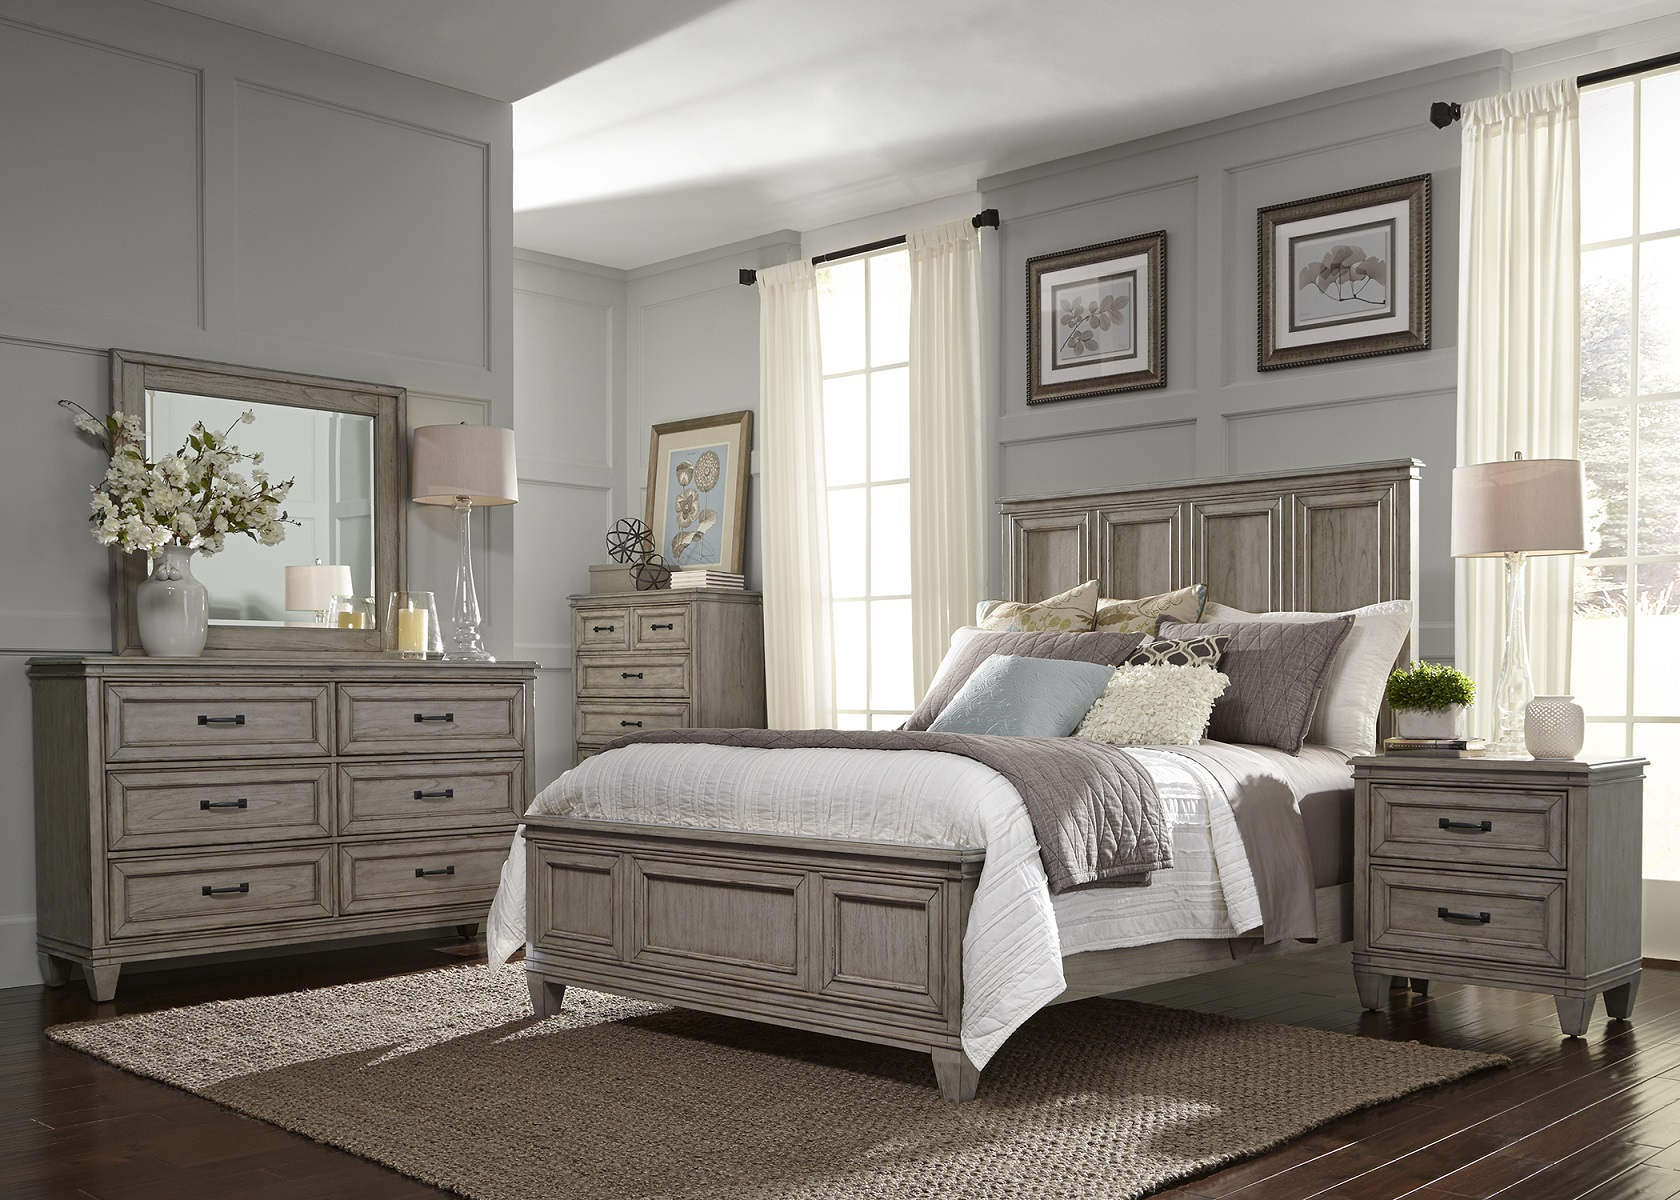 Image of: Weathered Driftwood Bedroom Furniture